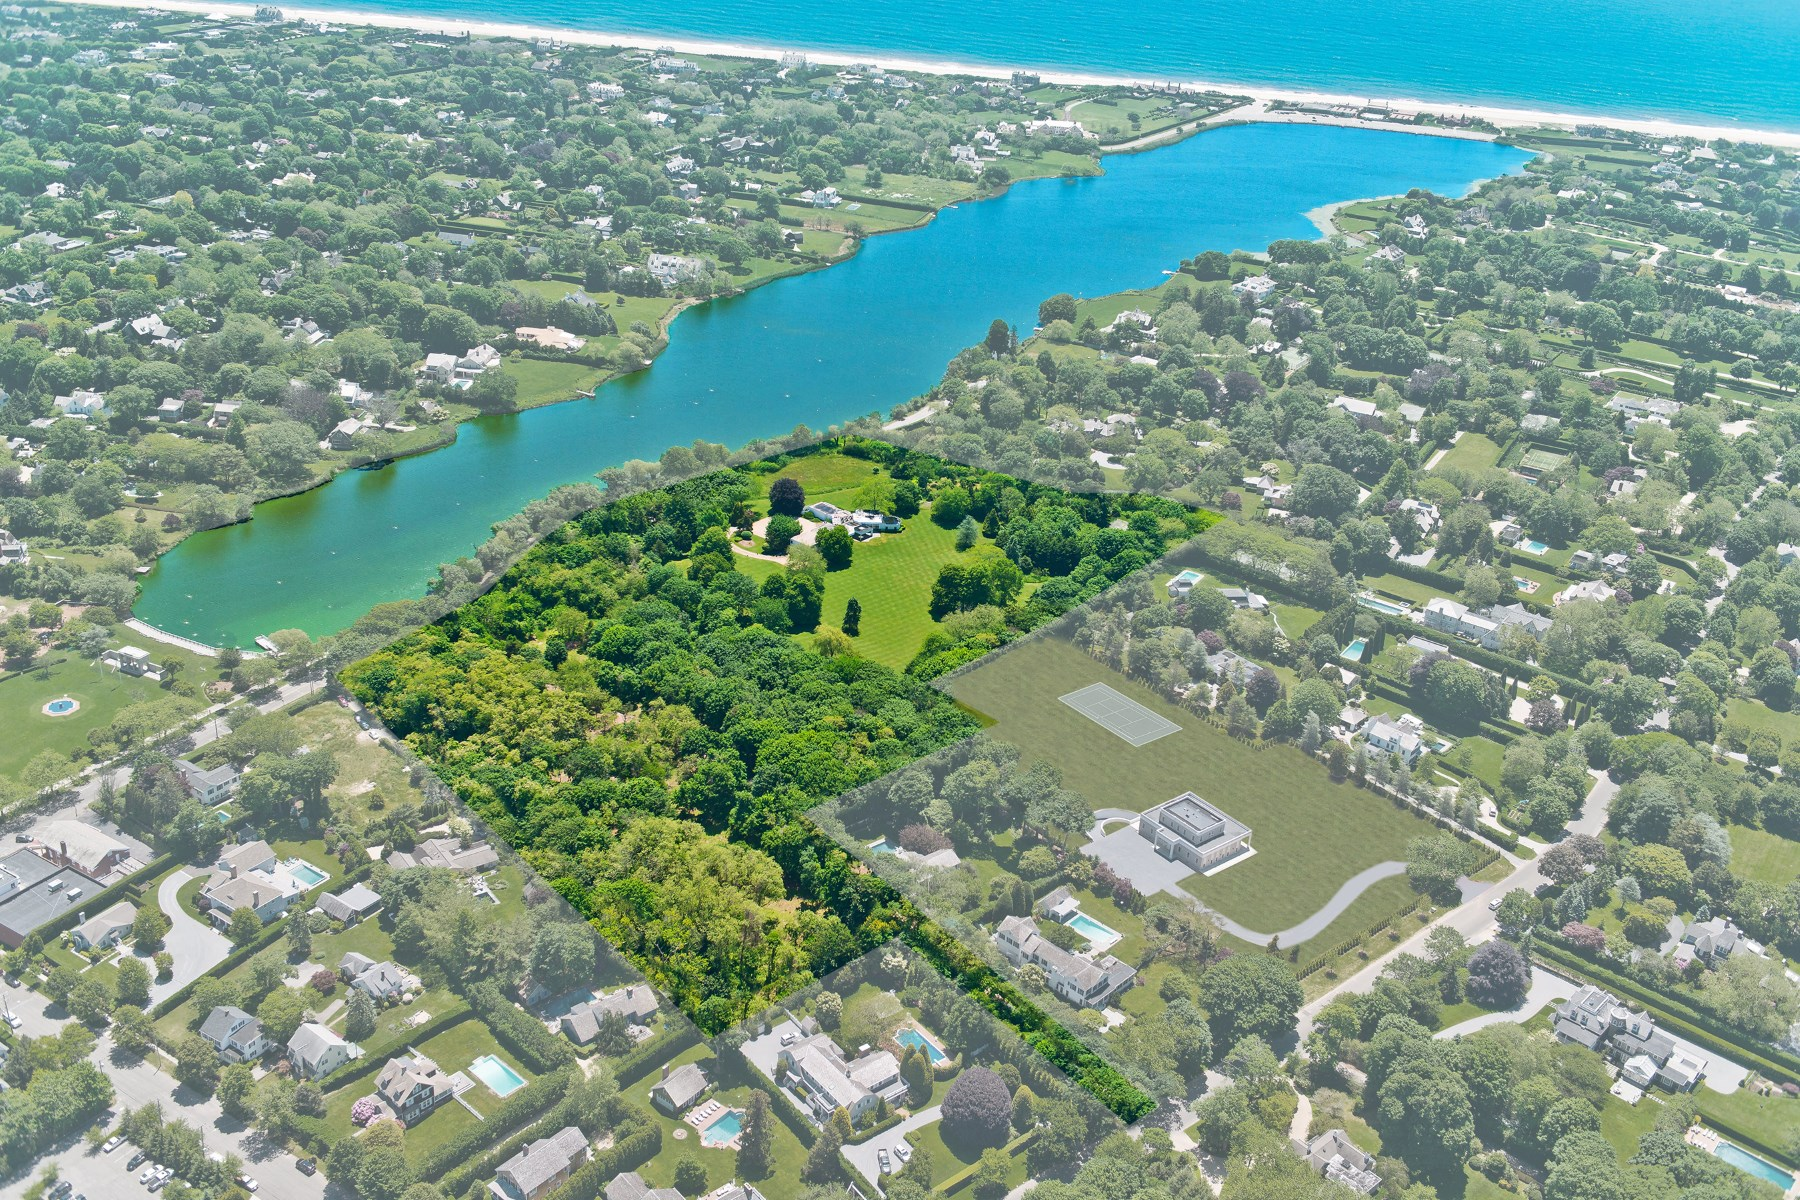 Maison unifamiliale pour l Vente à Overlooking Lake Agawam 111, 137, 153 Pond Lane & 52 First Neck Lane 4 properties combined Southampton Estate Section, Southampton, New York, 11968 États-Unis